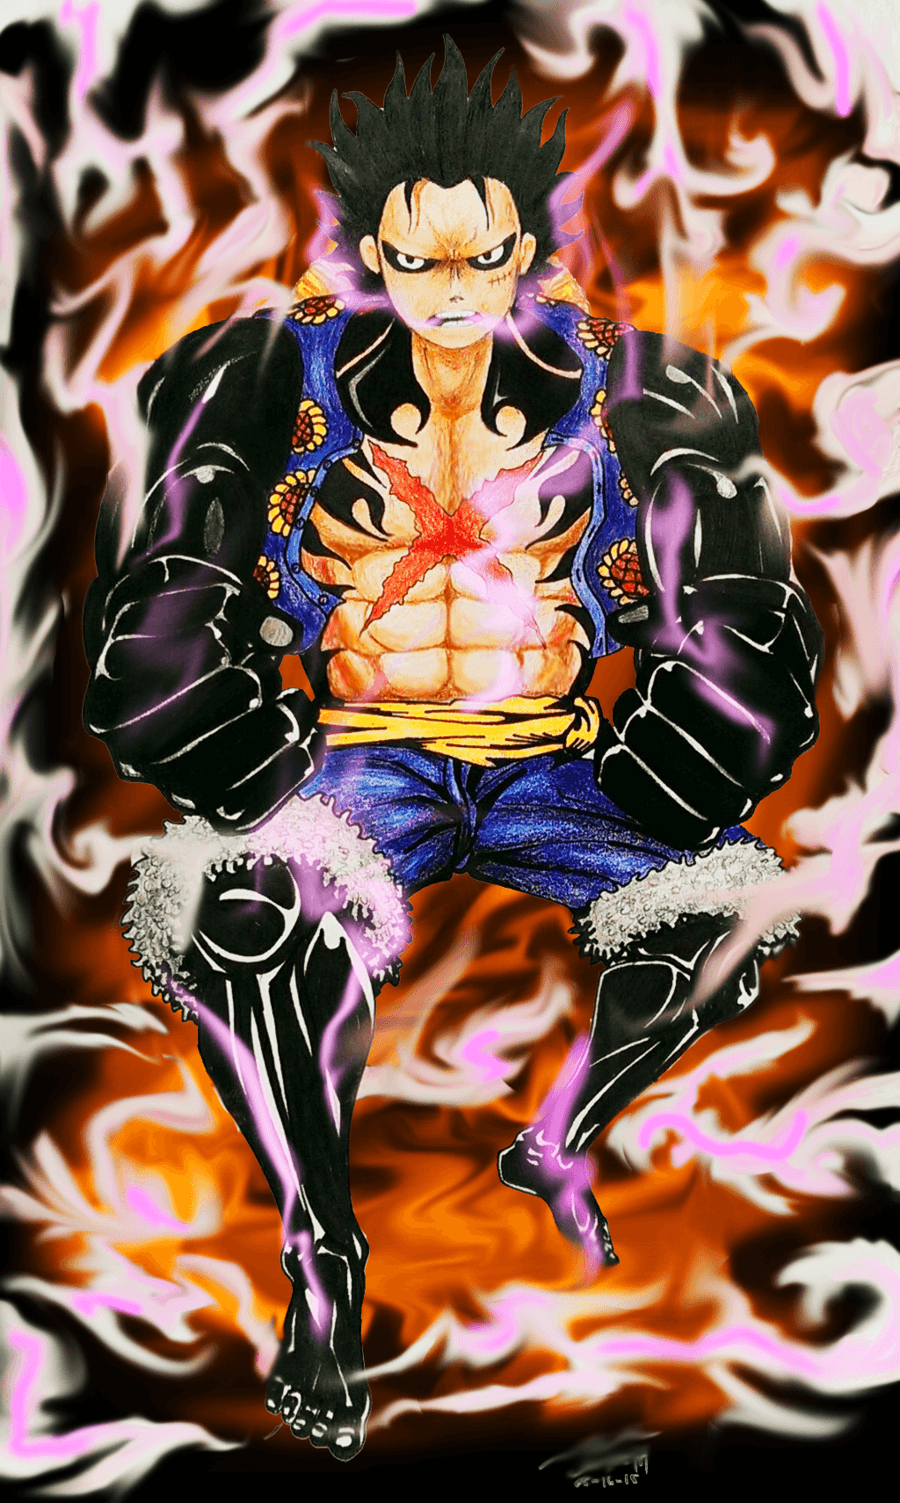 Tons of awesome luffy gear fourth wallpapers to download for free. Luffy Gear Fourth Wallpapers - Wallpaper Cave